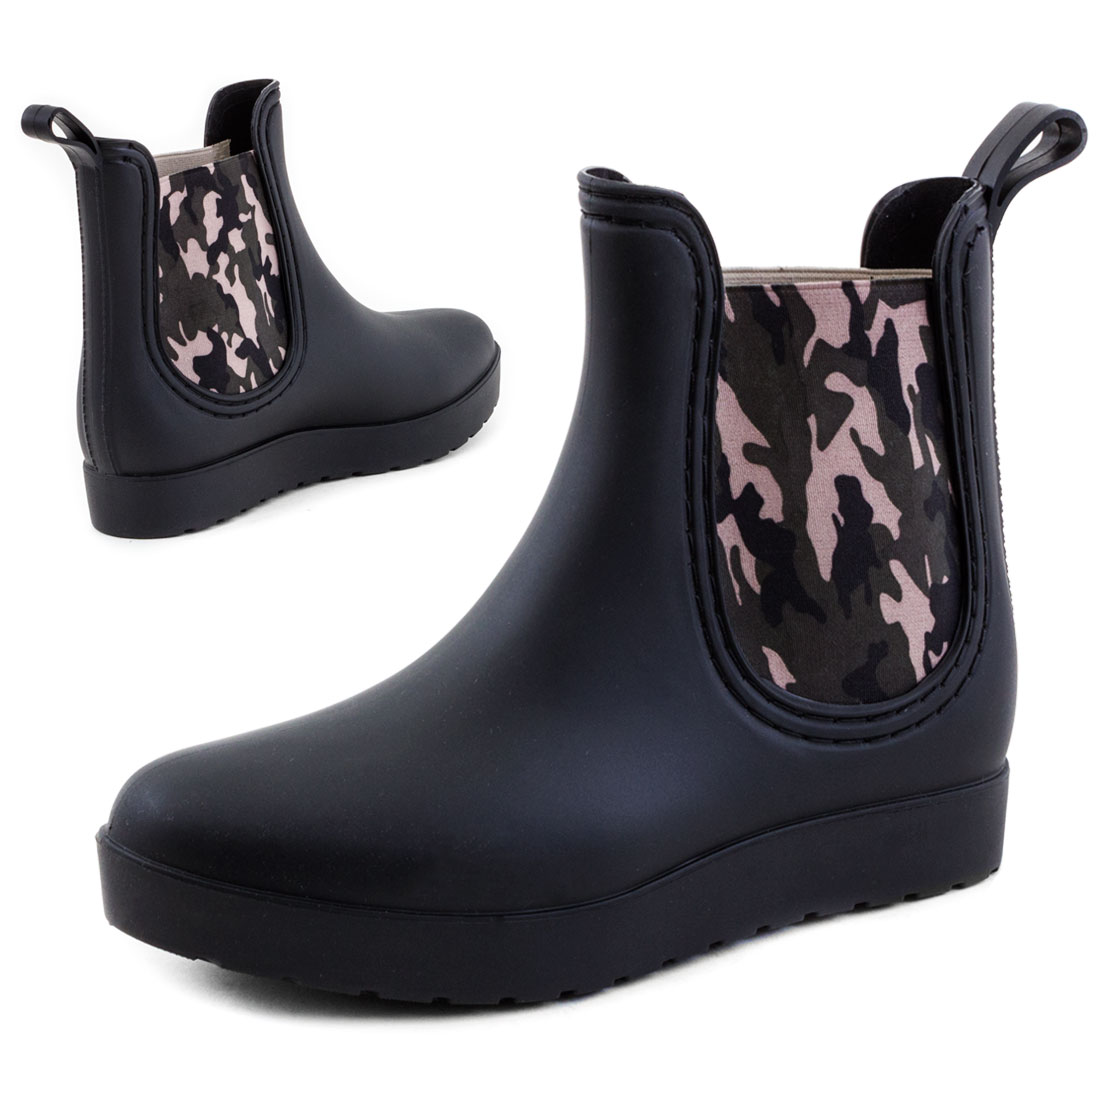 neu damen schulpf stiefeletten gummistiefel chelsea boots gr 36 37 38 39 40 41 ebay. Black Bedroom Furniture Sets. Home Design Ideas